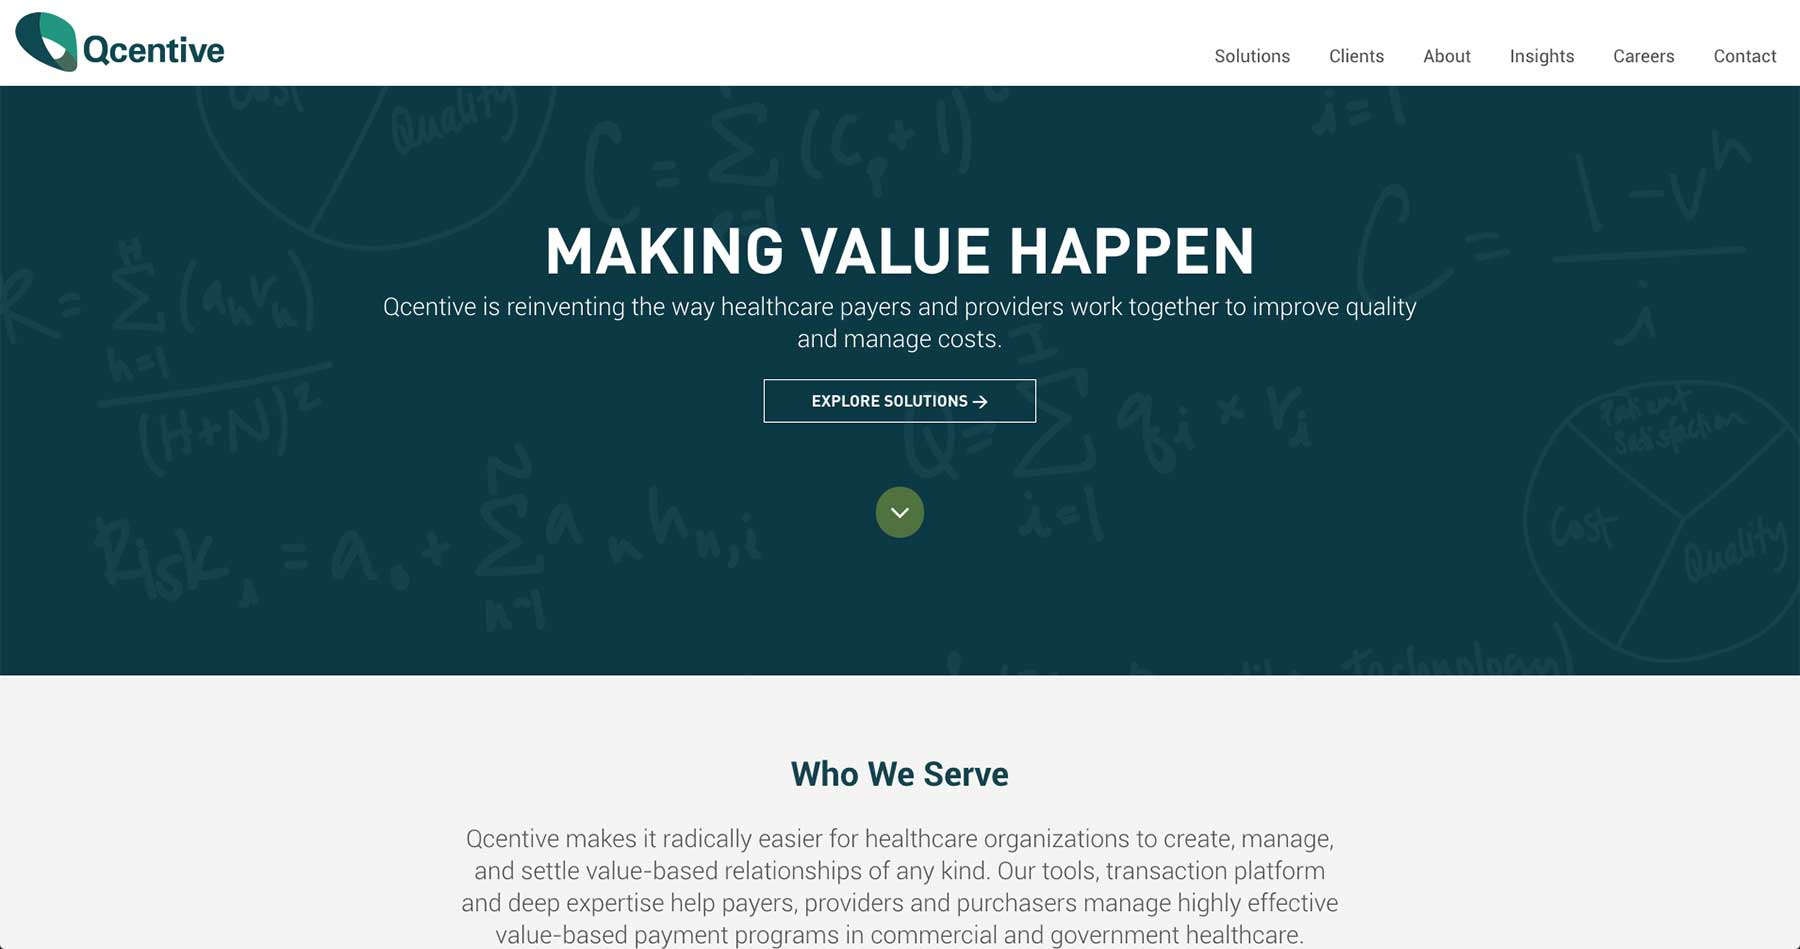 Qcentive Home Page